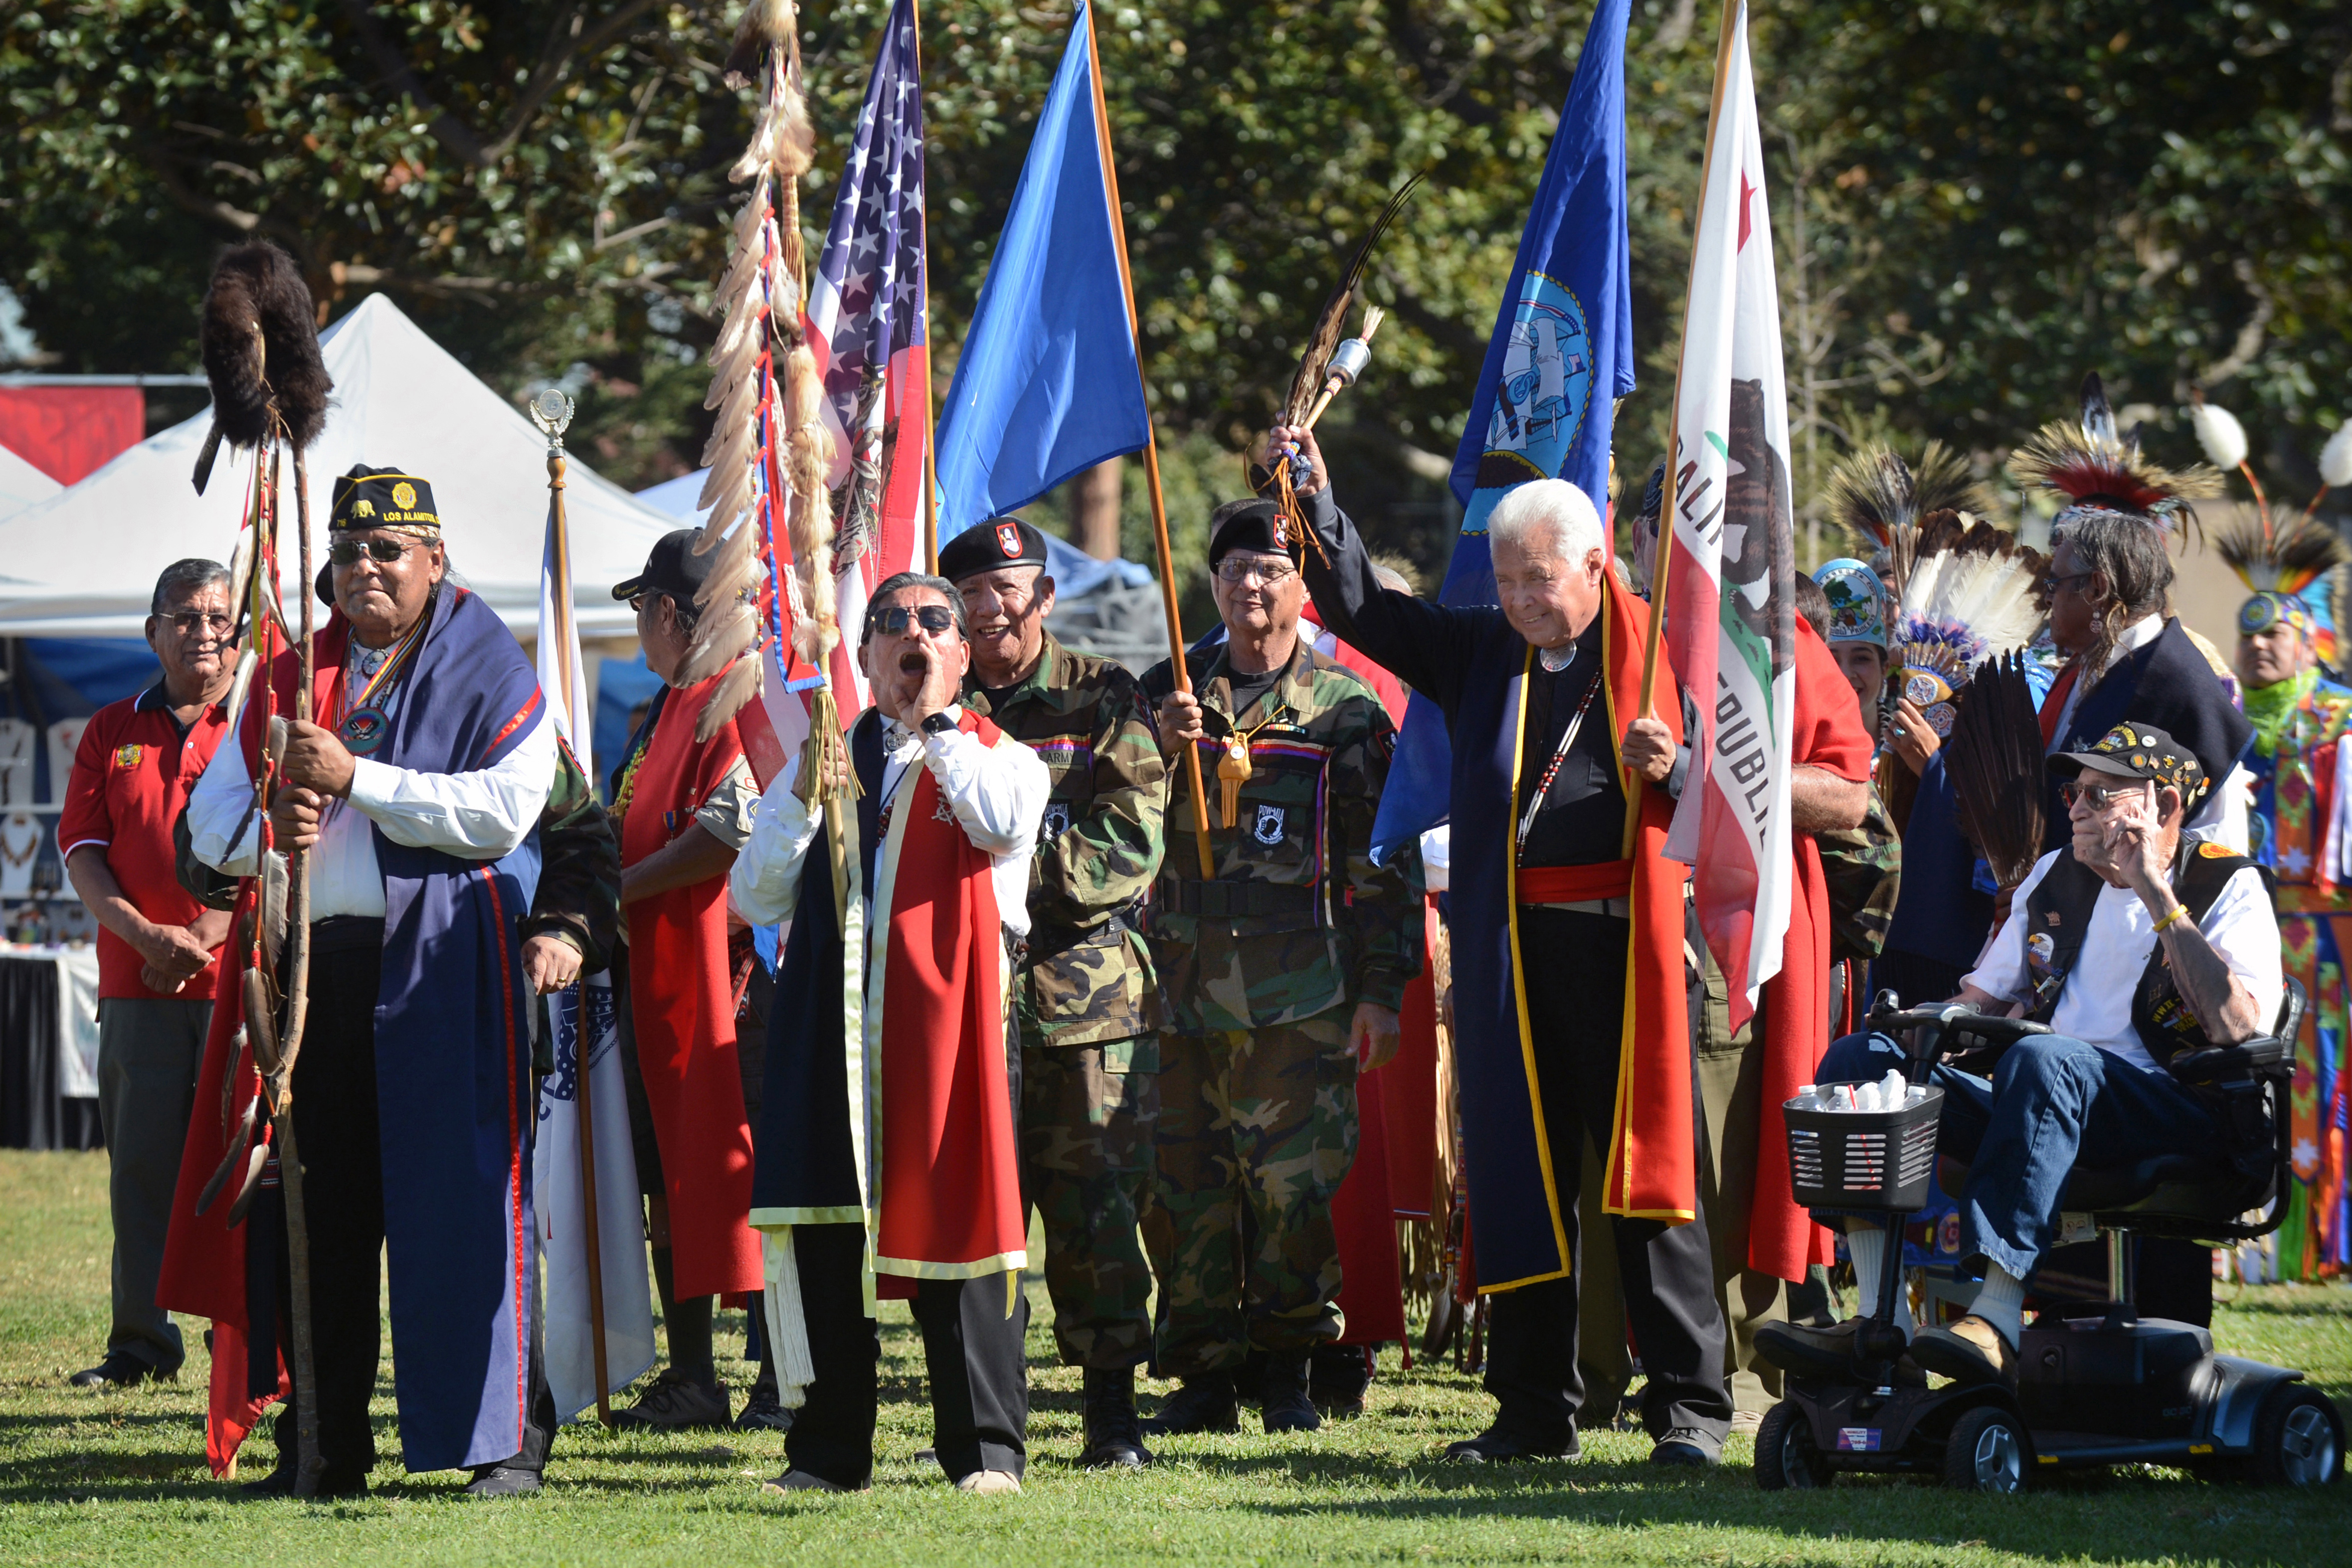 u s department of > photos > photo essays > essay view hi res photo gallery middot native american veterans